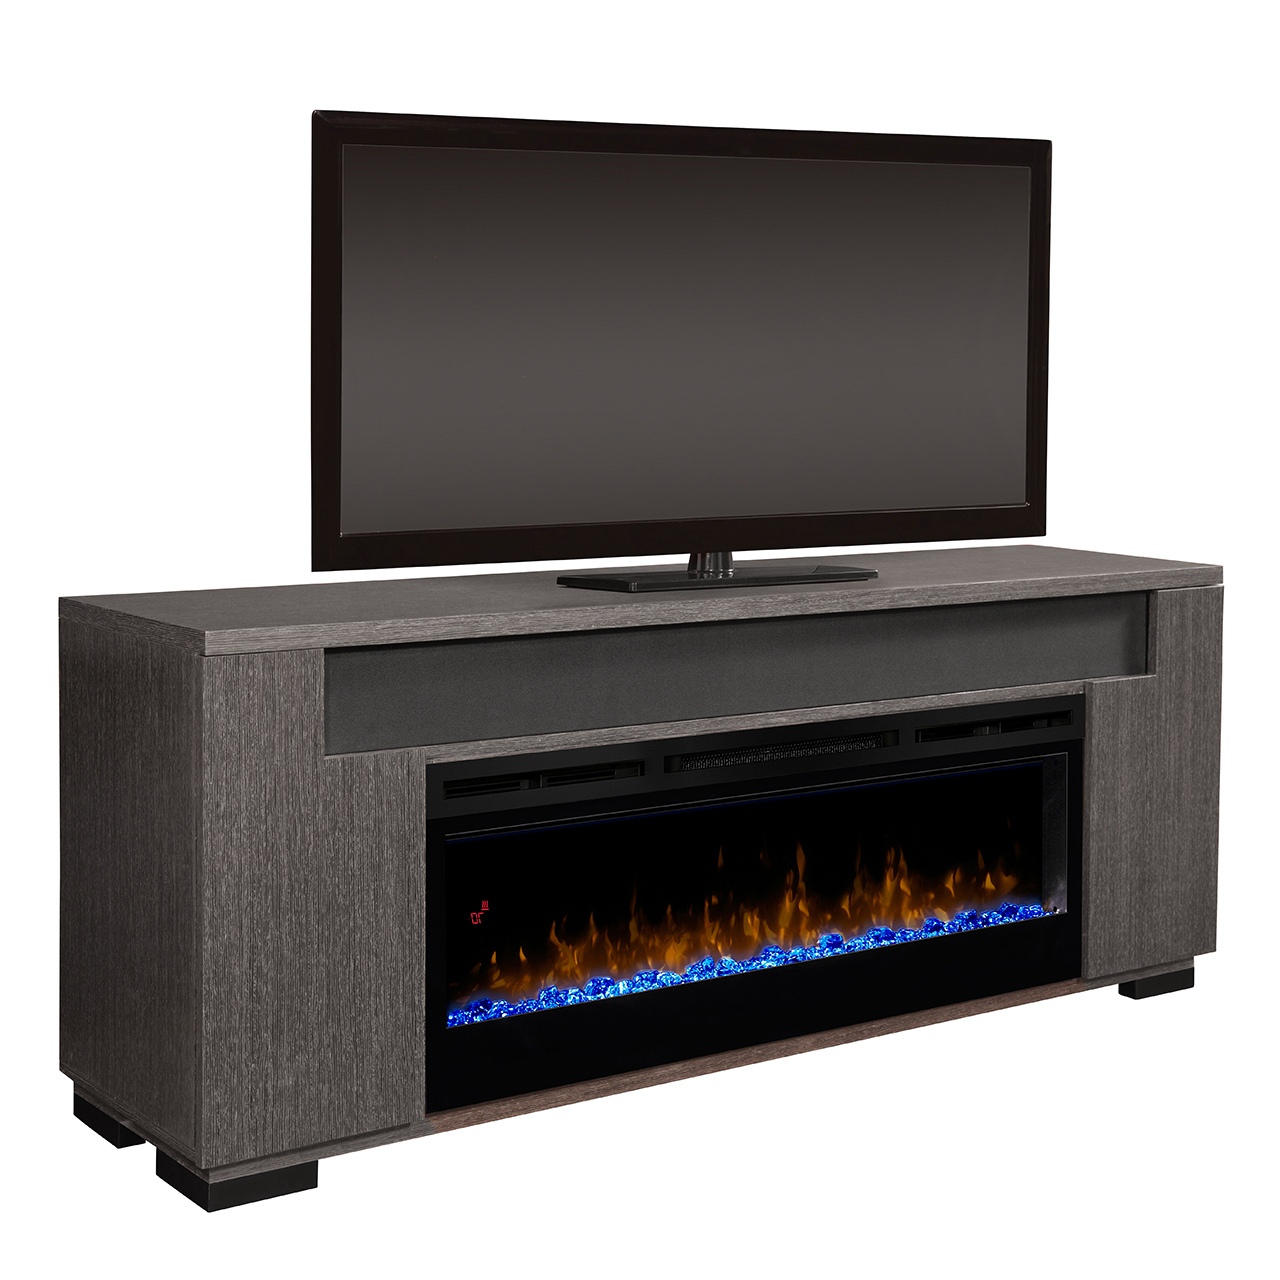 Picture of Haley Media Console Fireplace